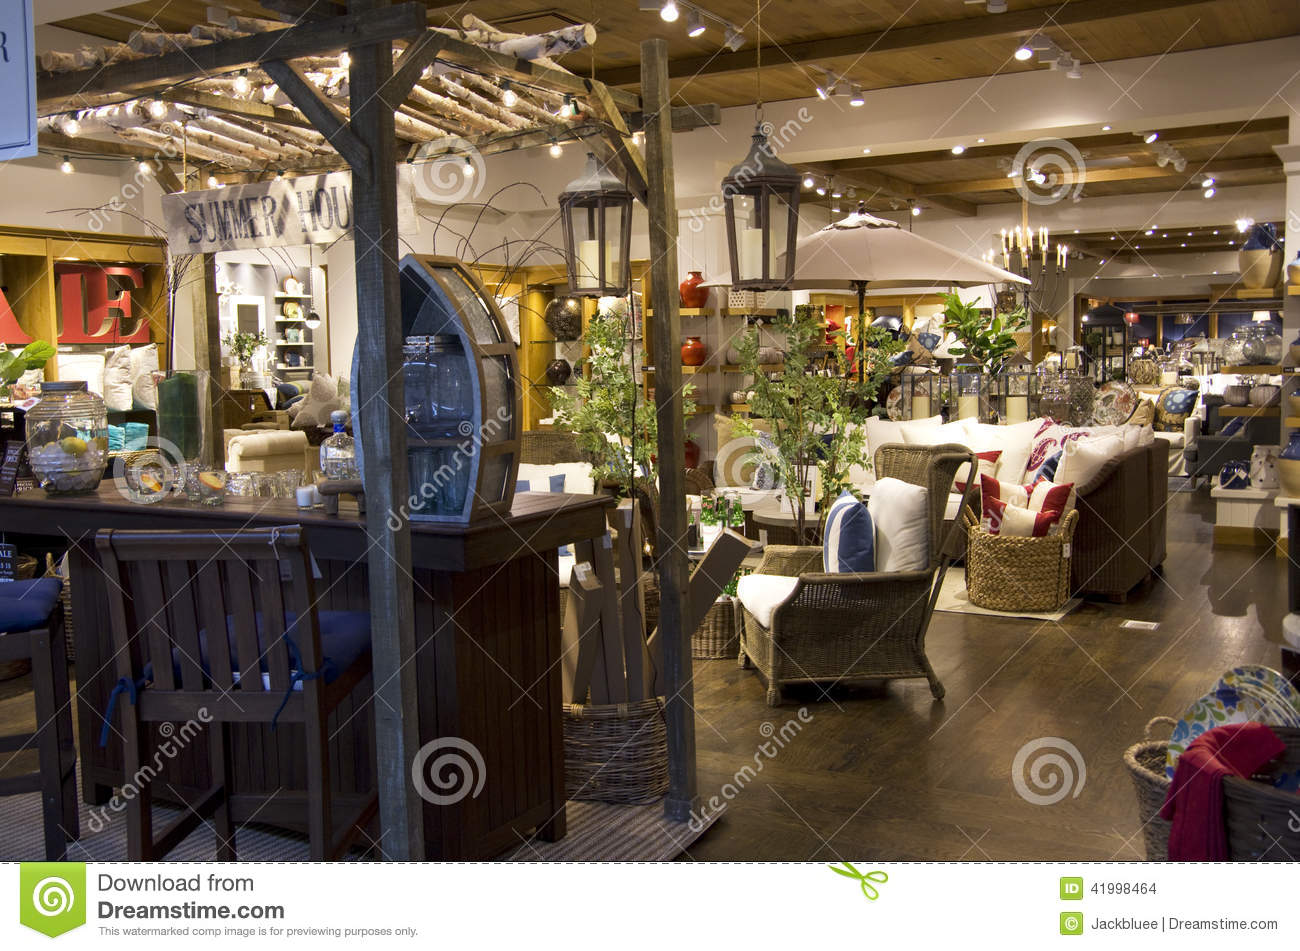 Home Goods Furniture Store Stock Photo Image Of Light 41998464